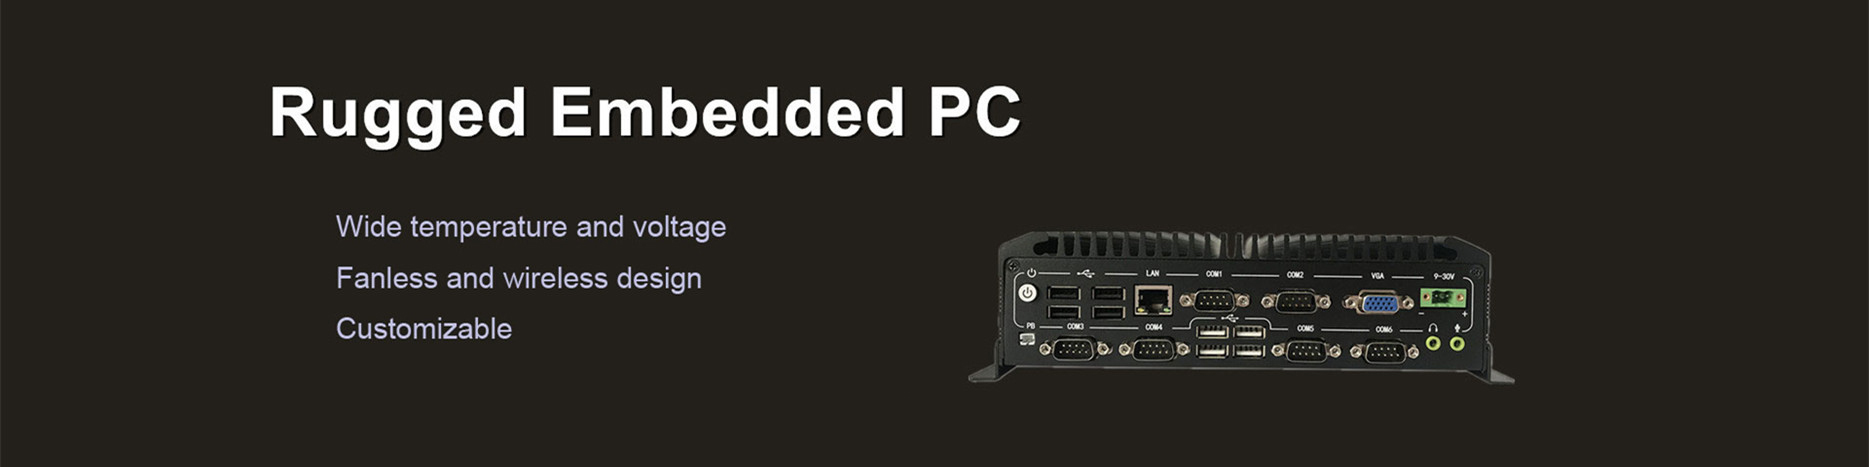 industrial embedded pc